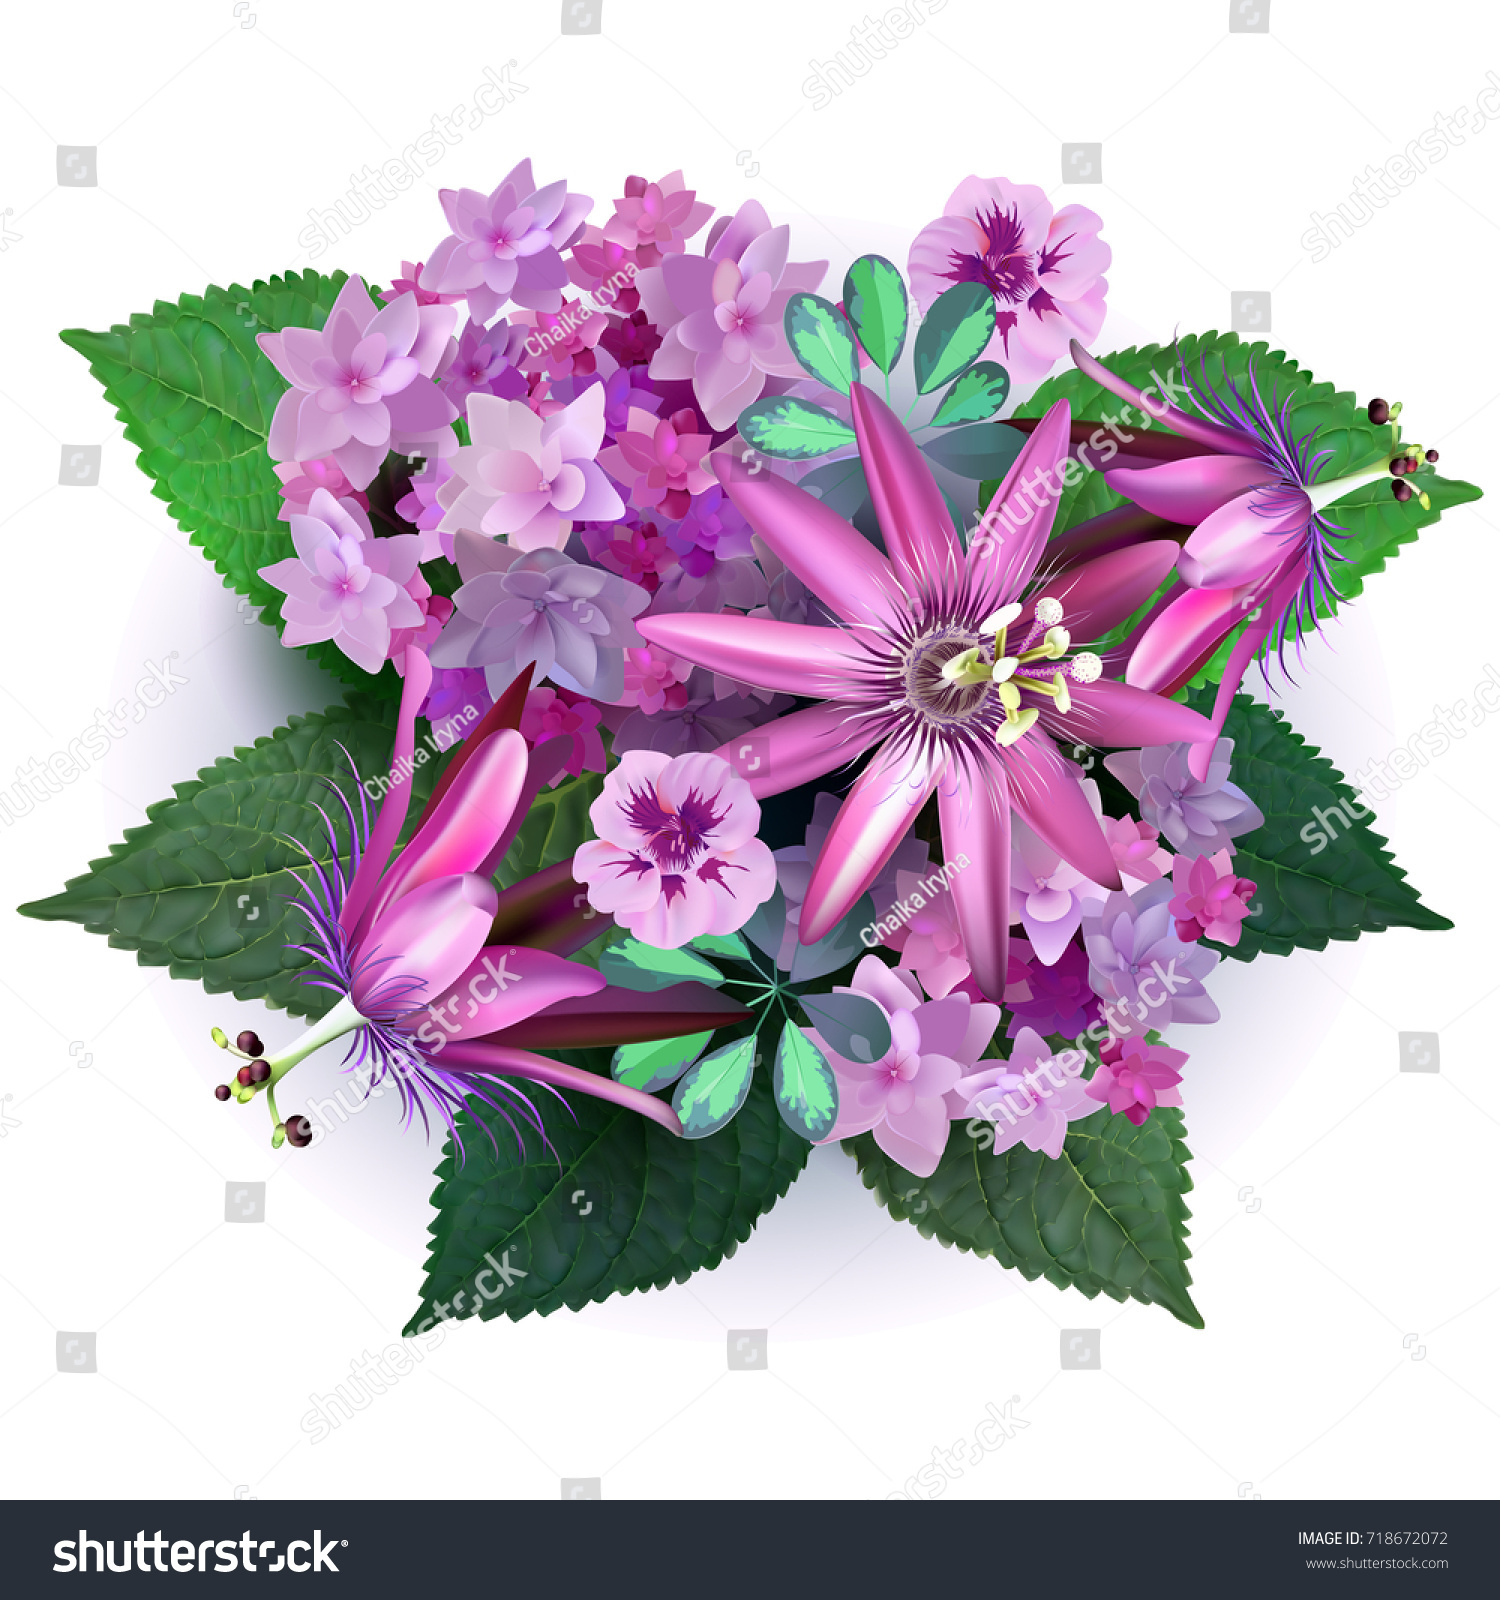 Exotic Tropical Flowers Hydrangea Passionflower Composition Stock